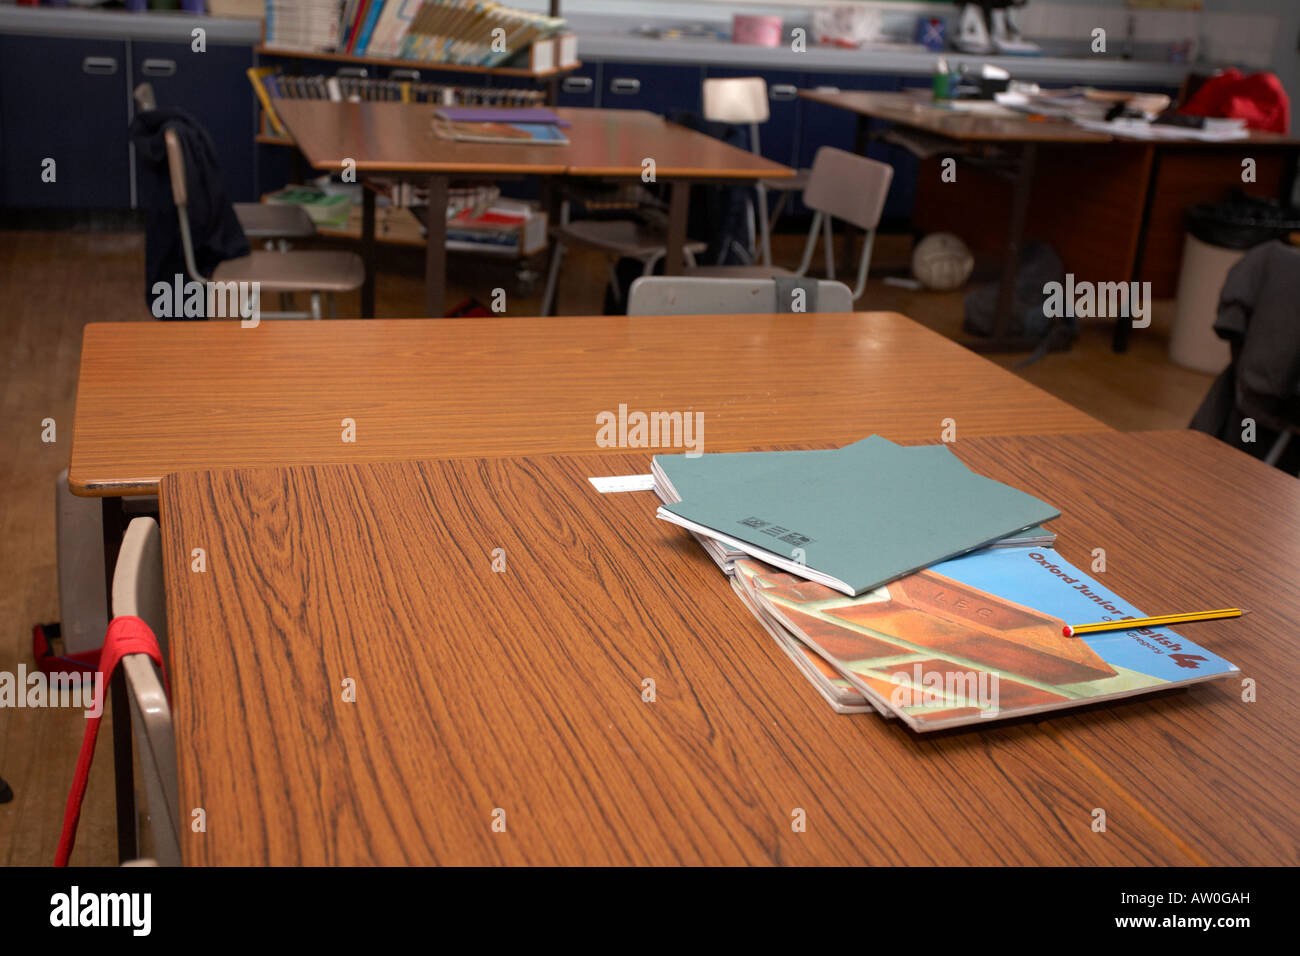 schoolbooks and english textbooks sitting on tables in an